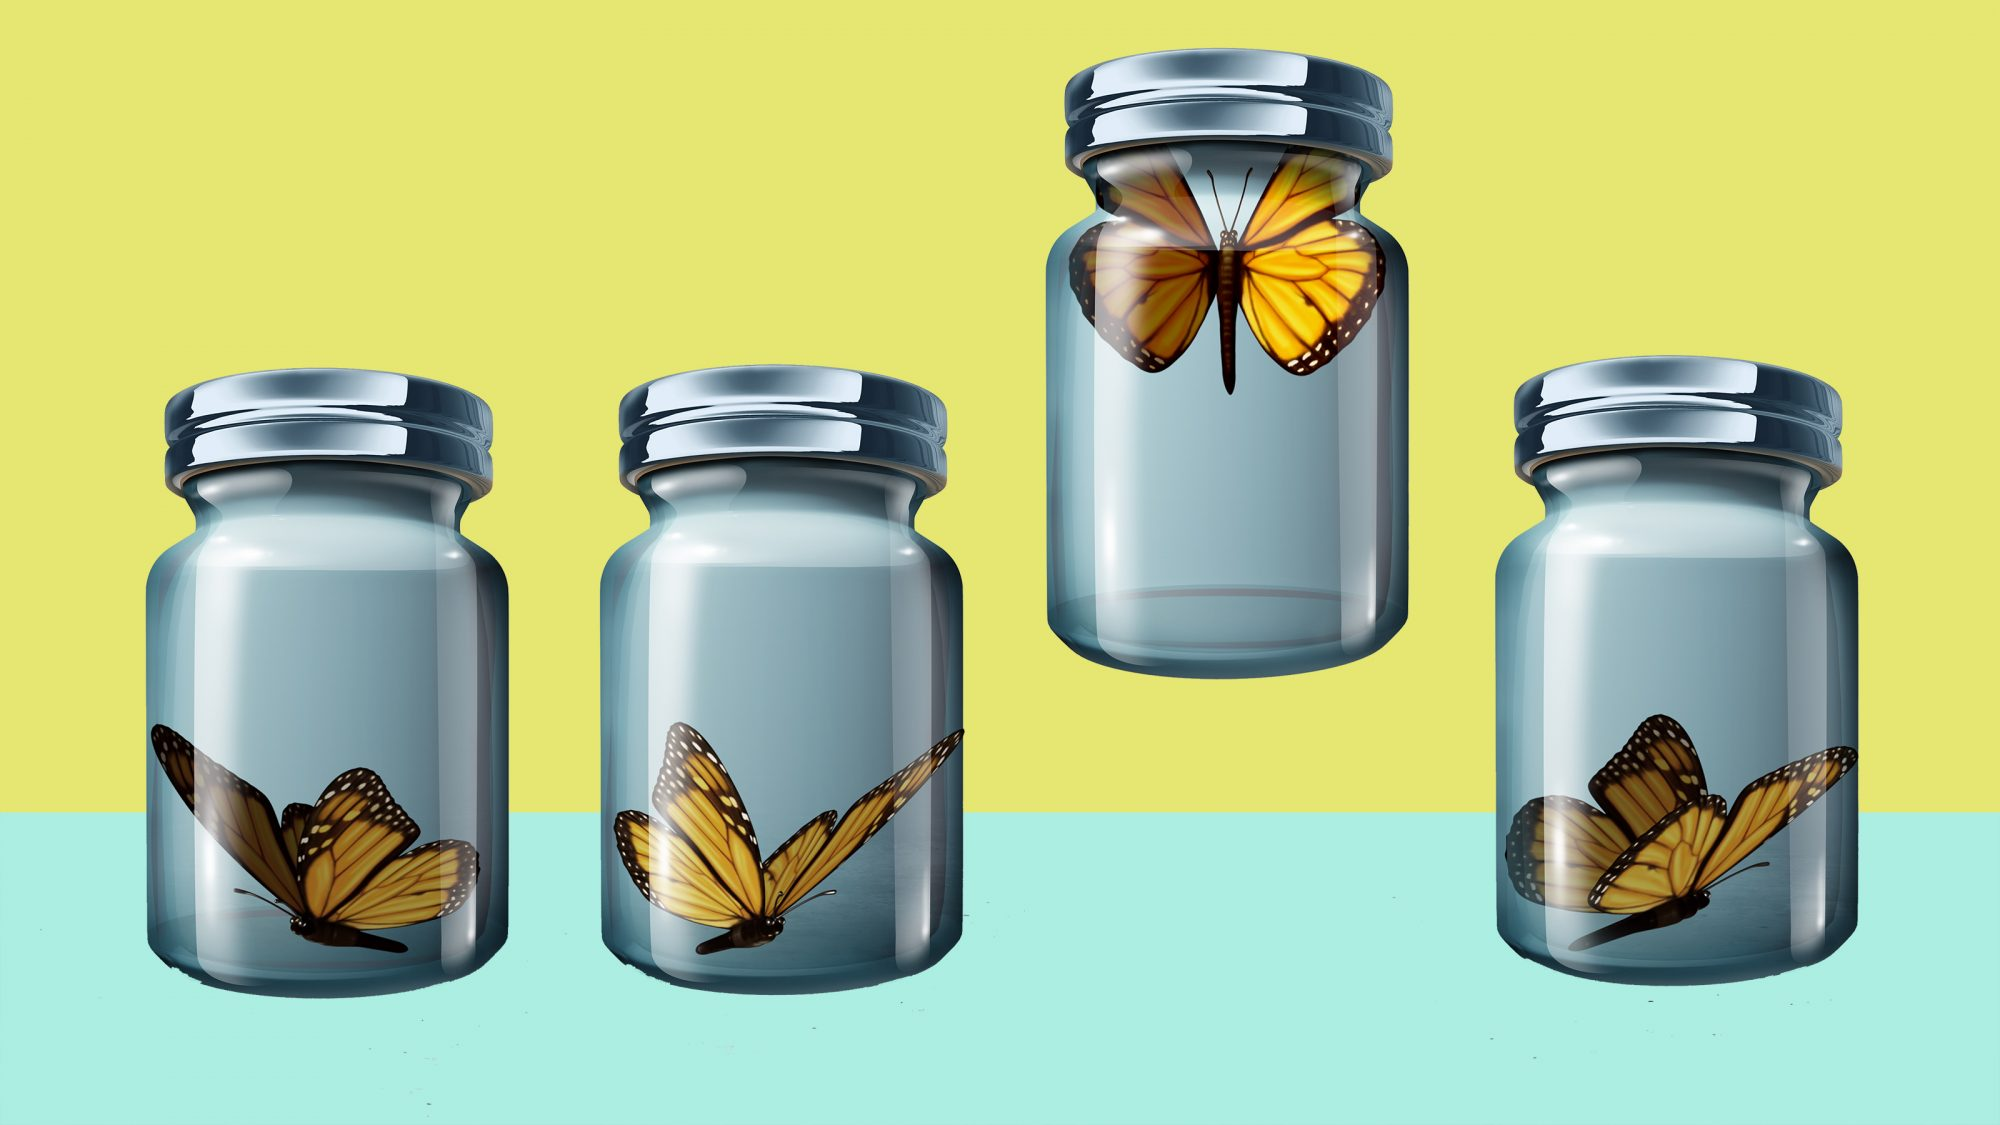 Cabin fever - meaning, definition, and symptoms (butterflies in jars)